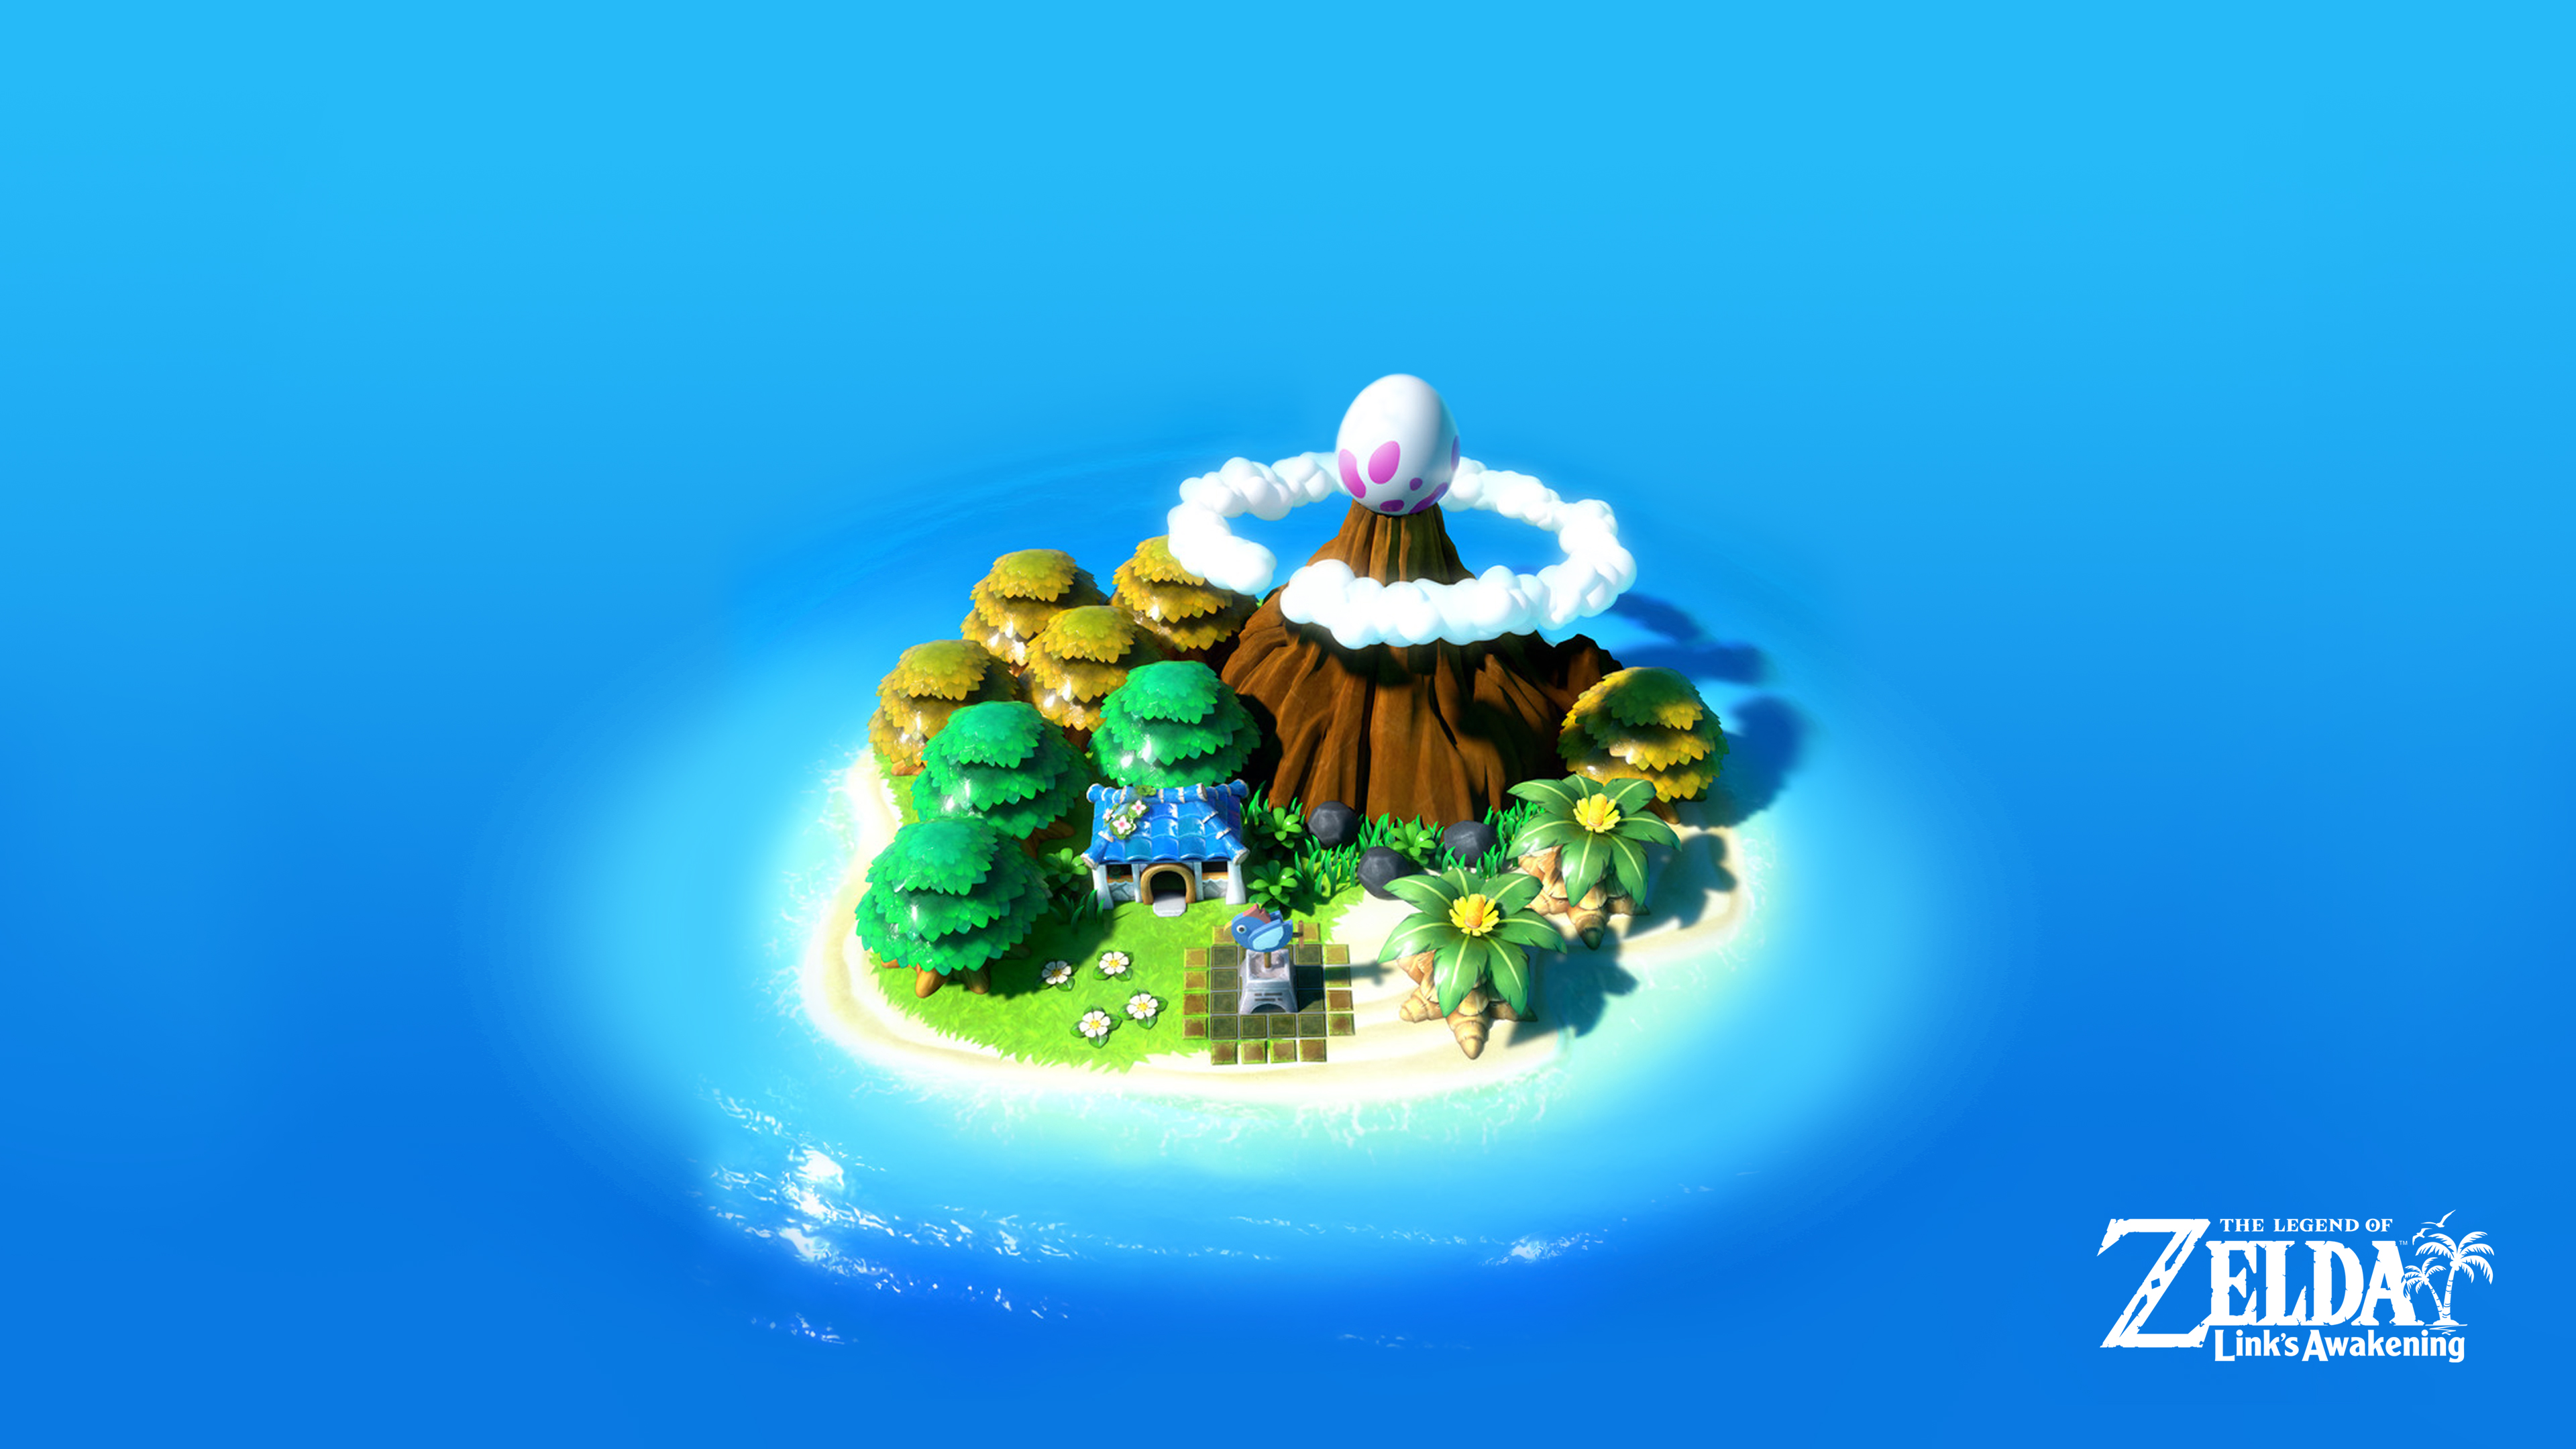 The Legend Of Zelda Link S Awakening Koholint Island Wallpaper